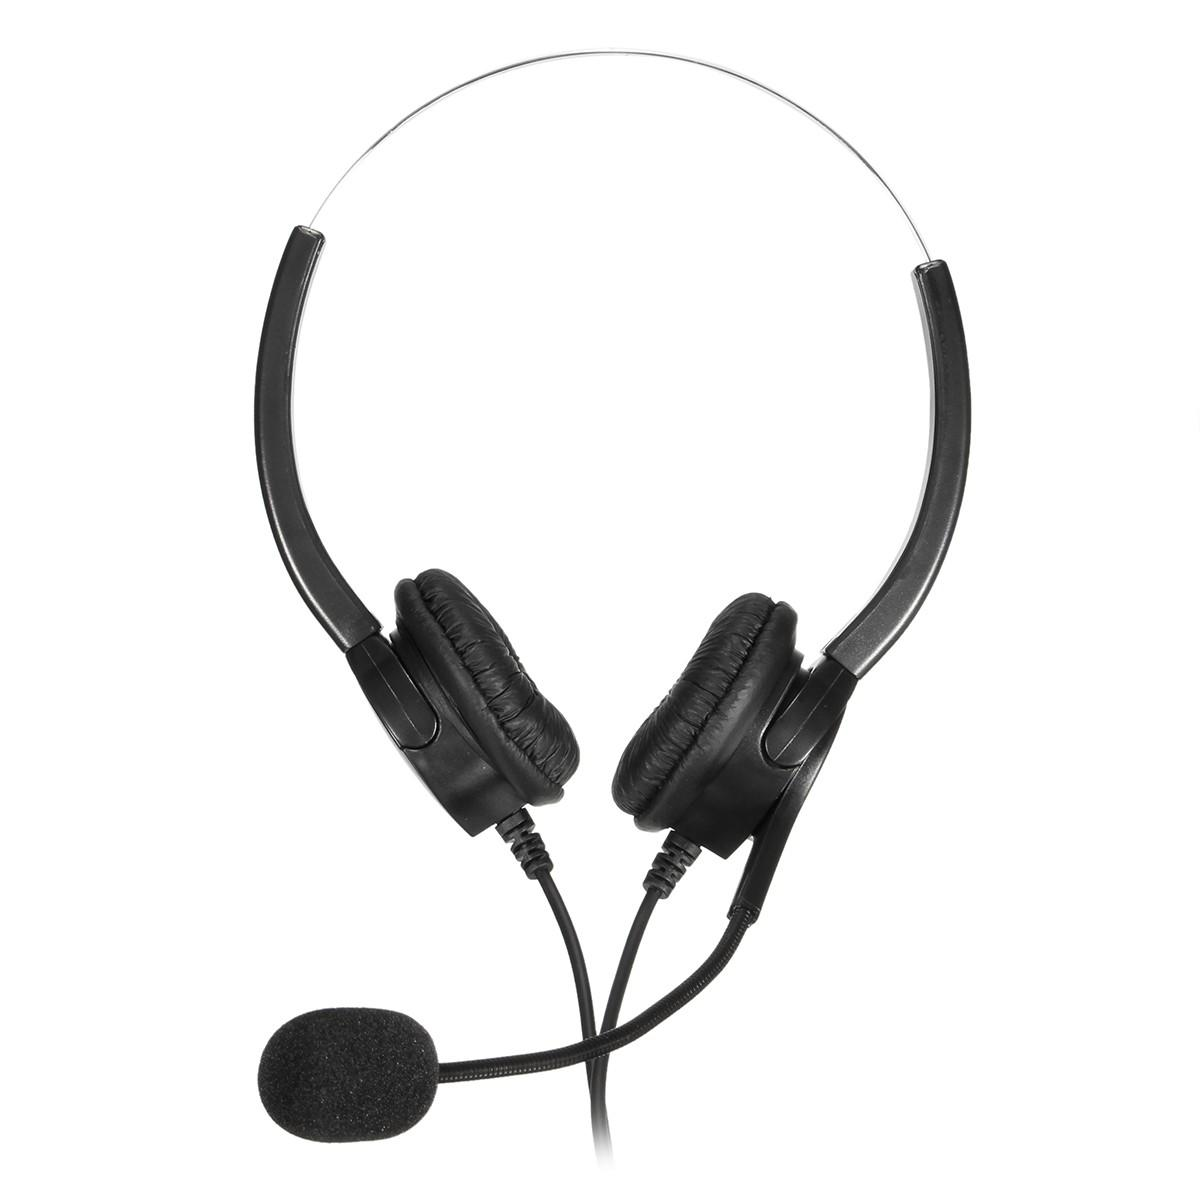 RJ11 Call Center Headset Telephone Corded Wired Microphone Office Head Phone фото